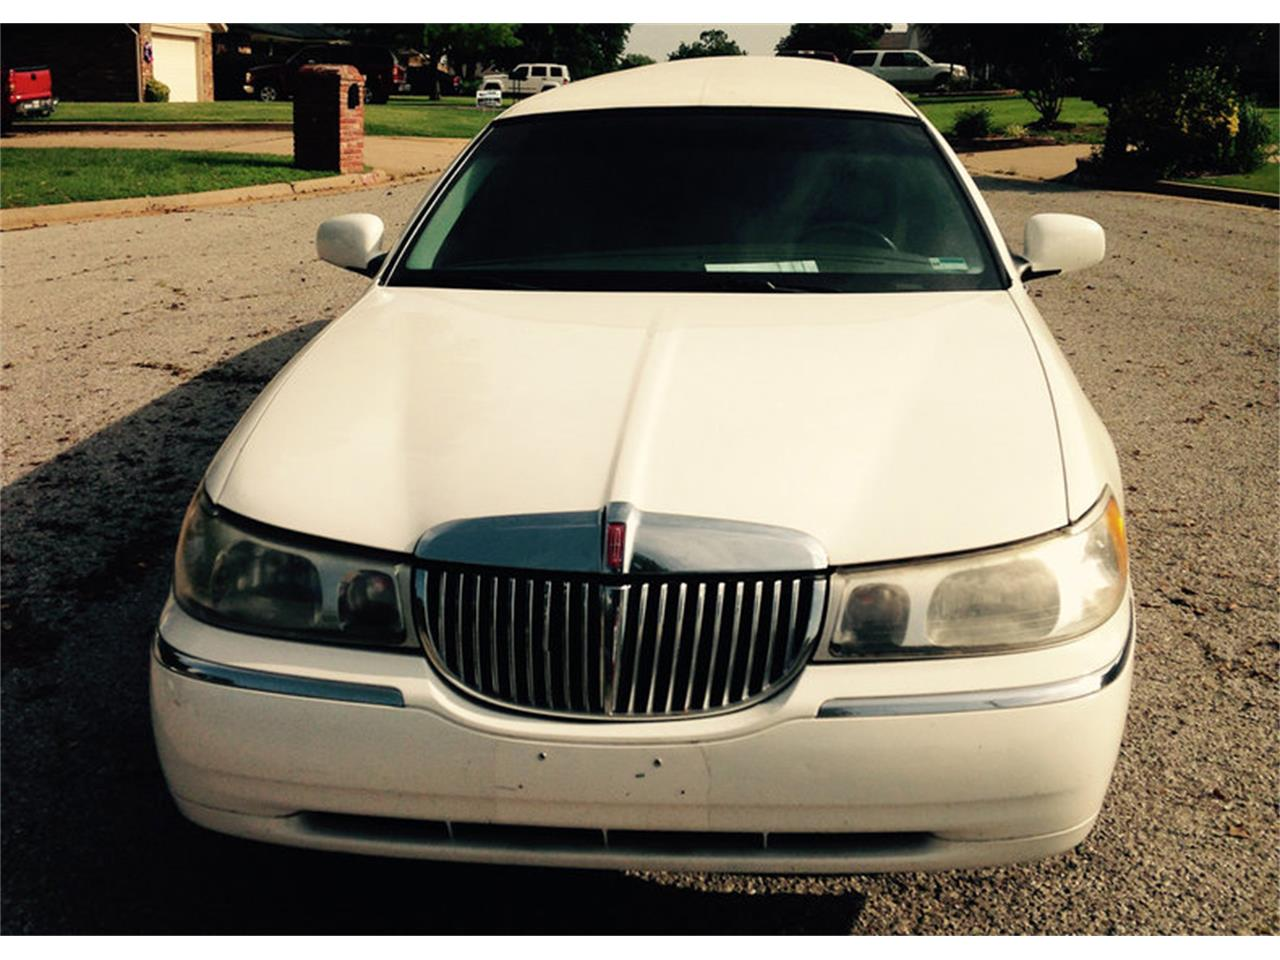 2000 Lincoln Continental For Sale Classiccars Com Cc 953391